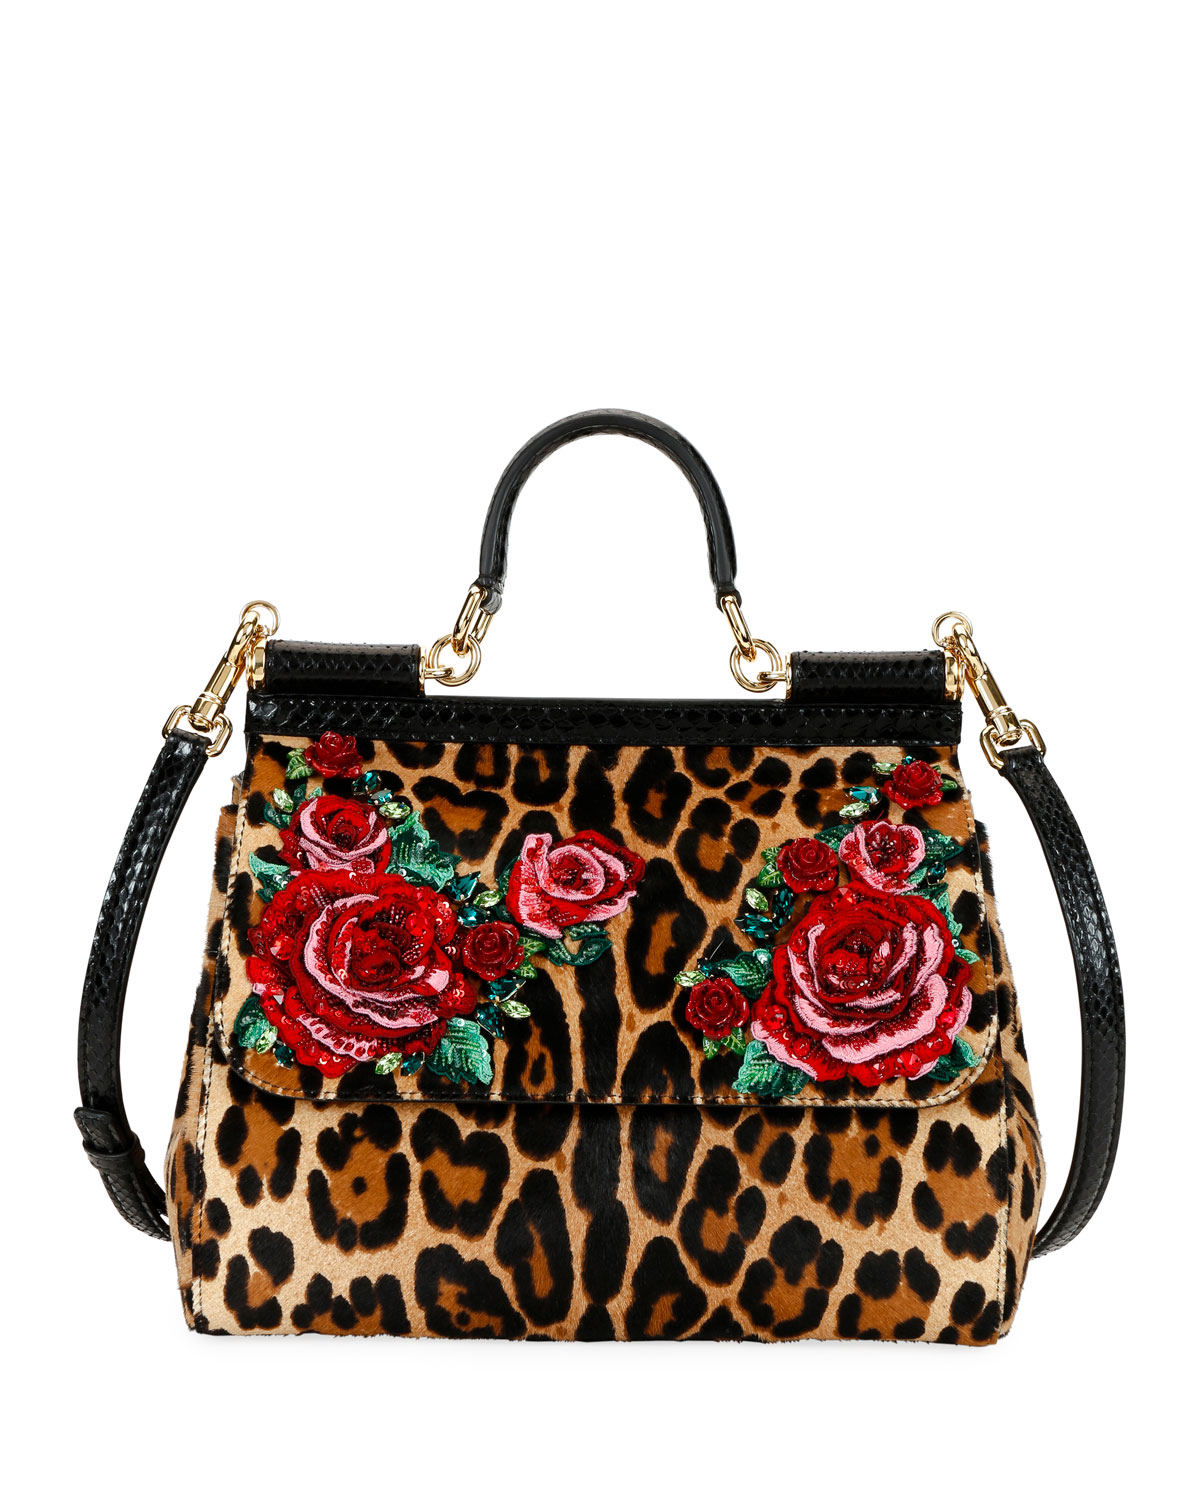 497486bd81 Dolce   Gabbana Sicily Medium Leopard-Print Shoulder Bag